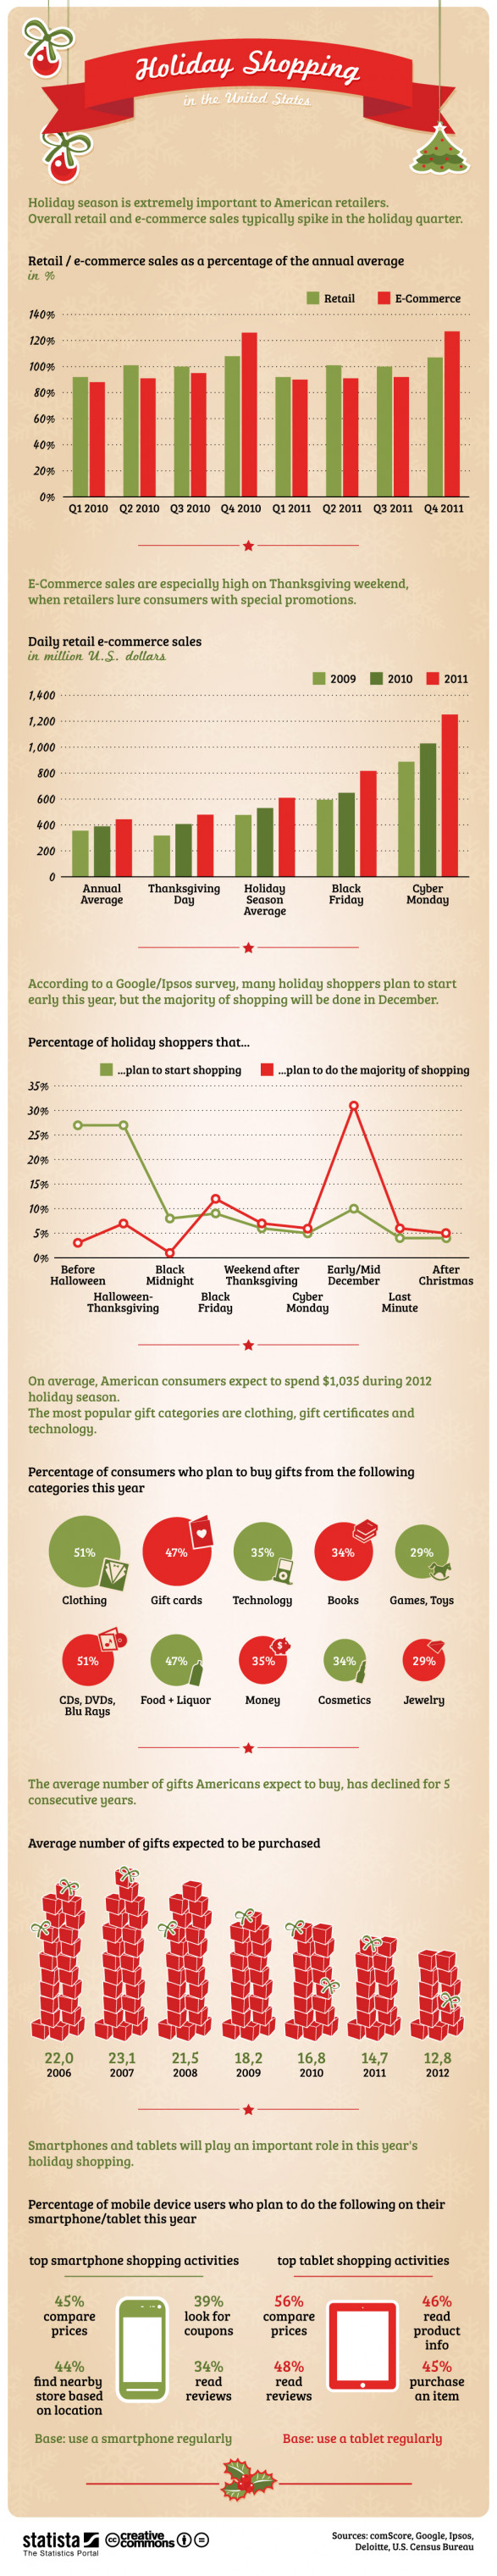 Holiday Shopping in the United States